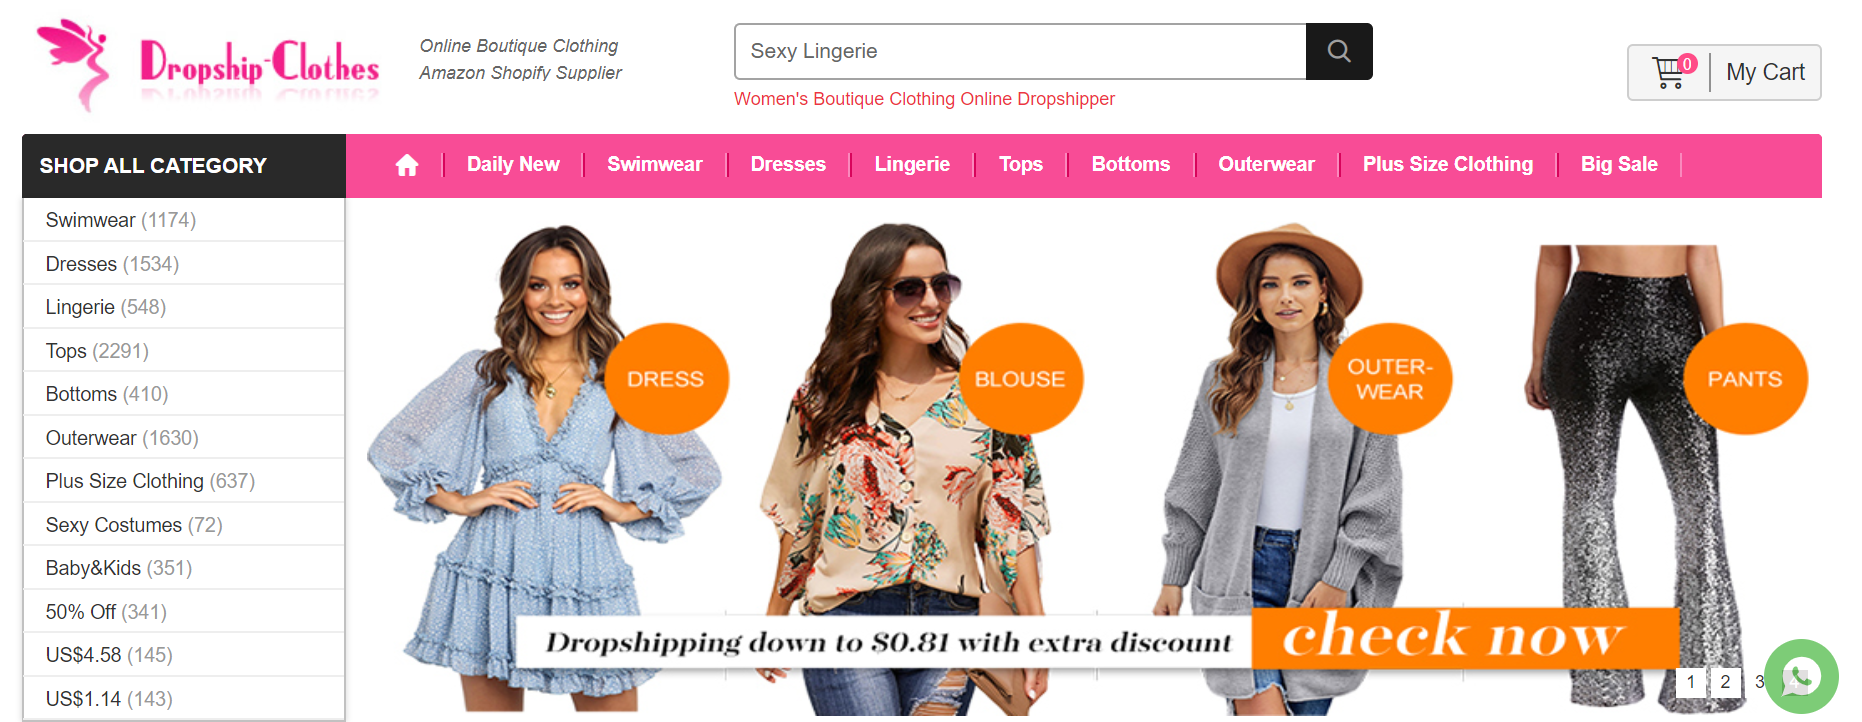 Dropship-clothes.com Start an Online Clothing Business